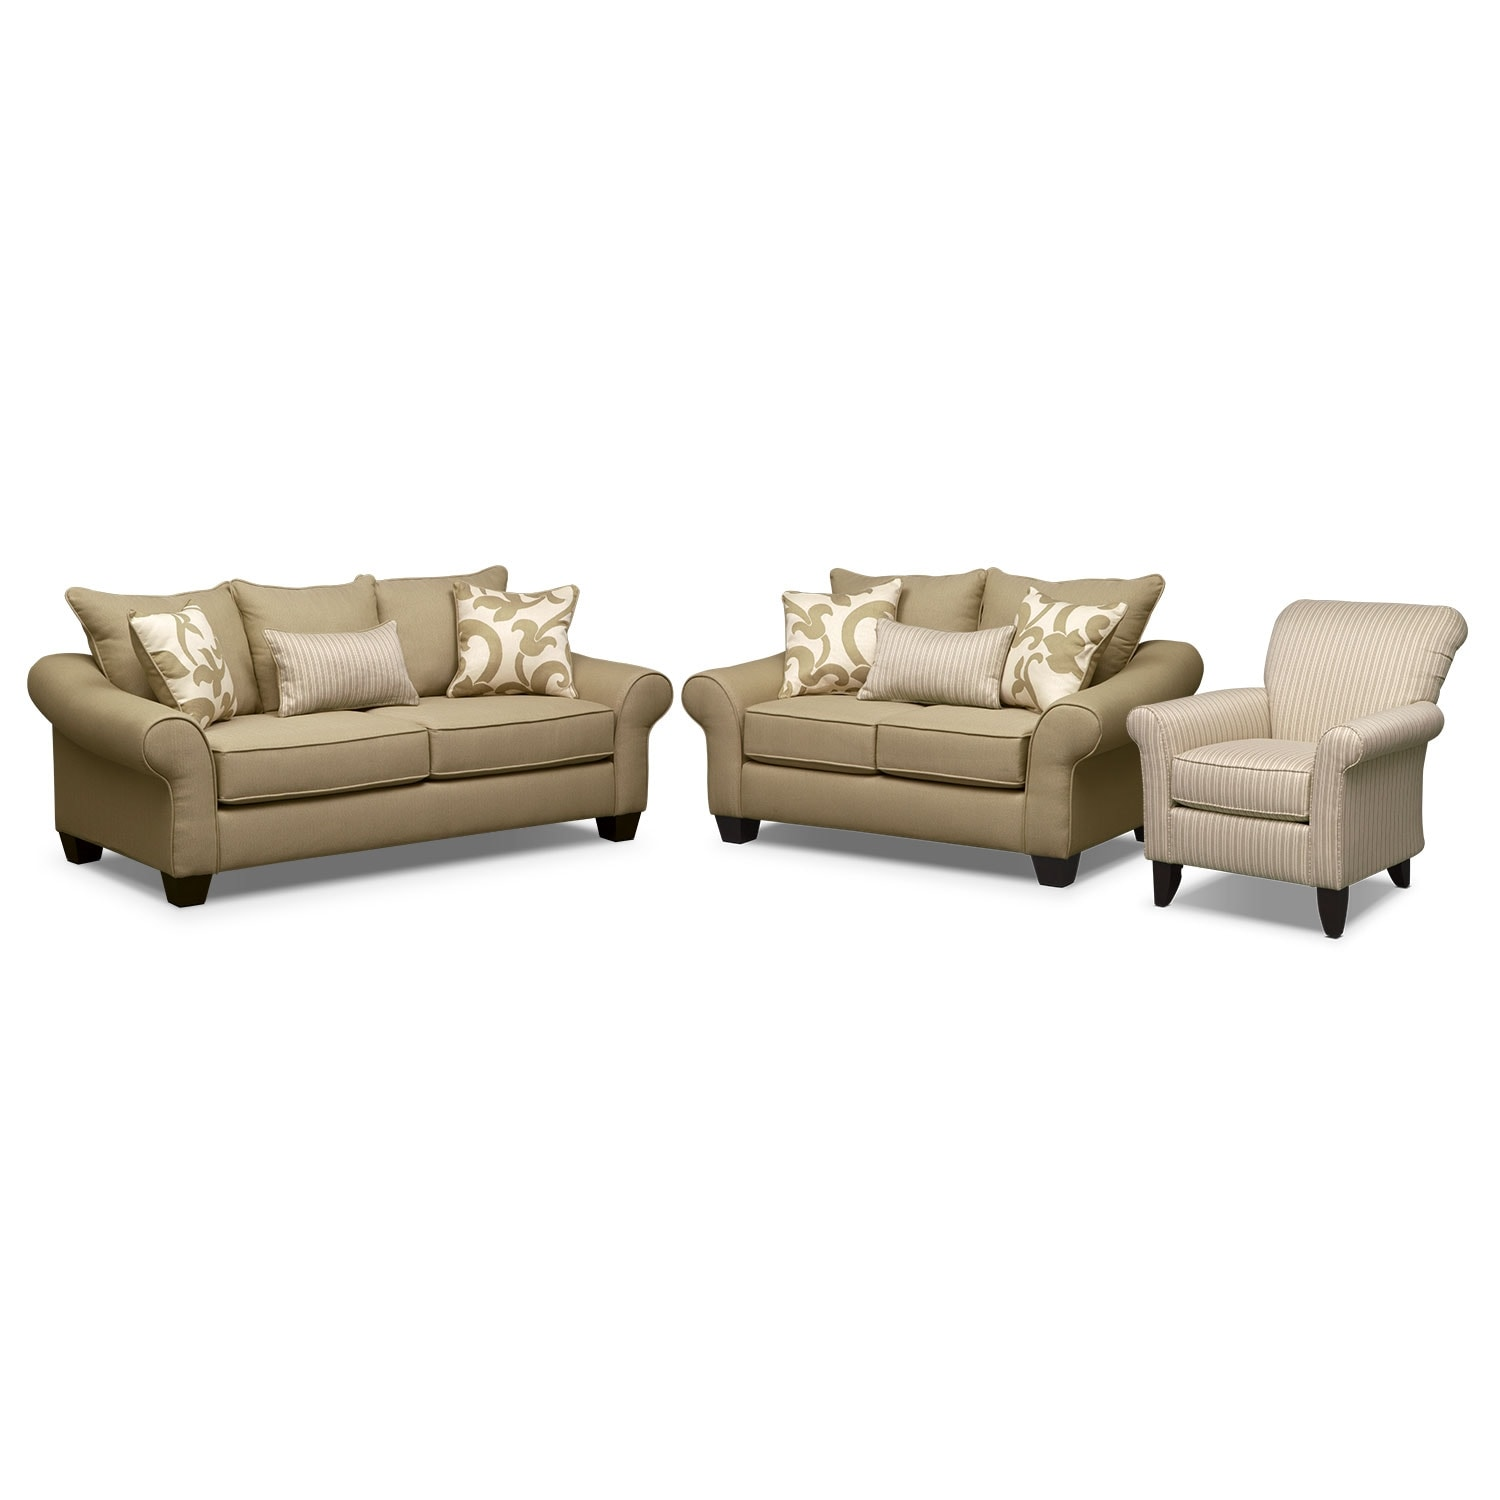 Colette Full Innerspring Sleeper Sofa Loveseat And Accent Chair Set Khaki Value City Furniture